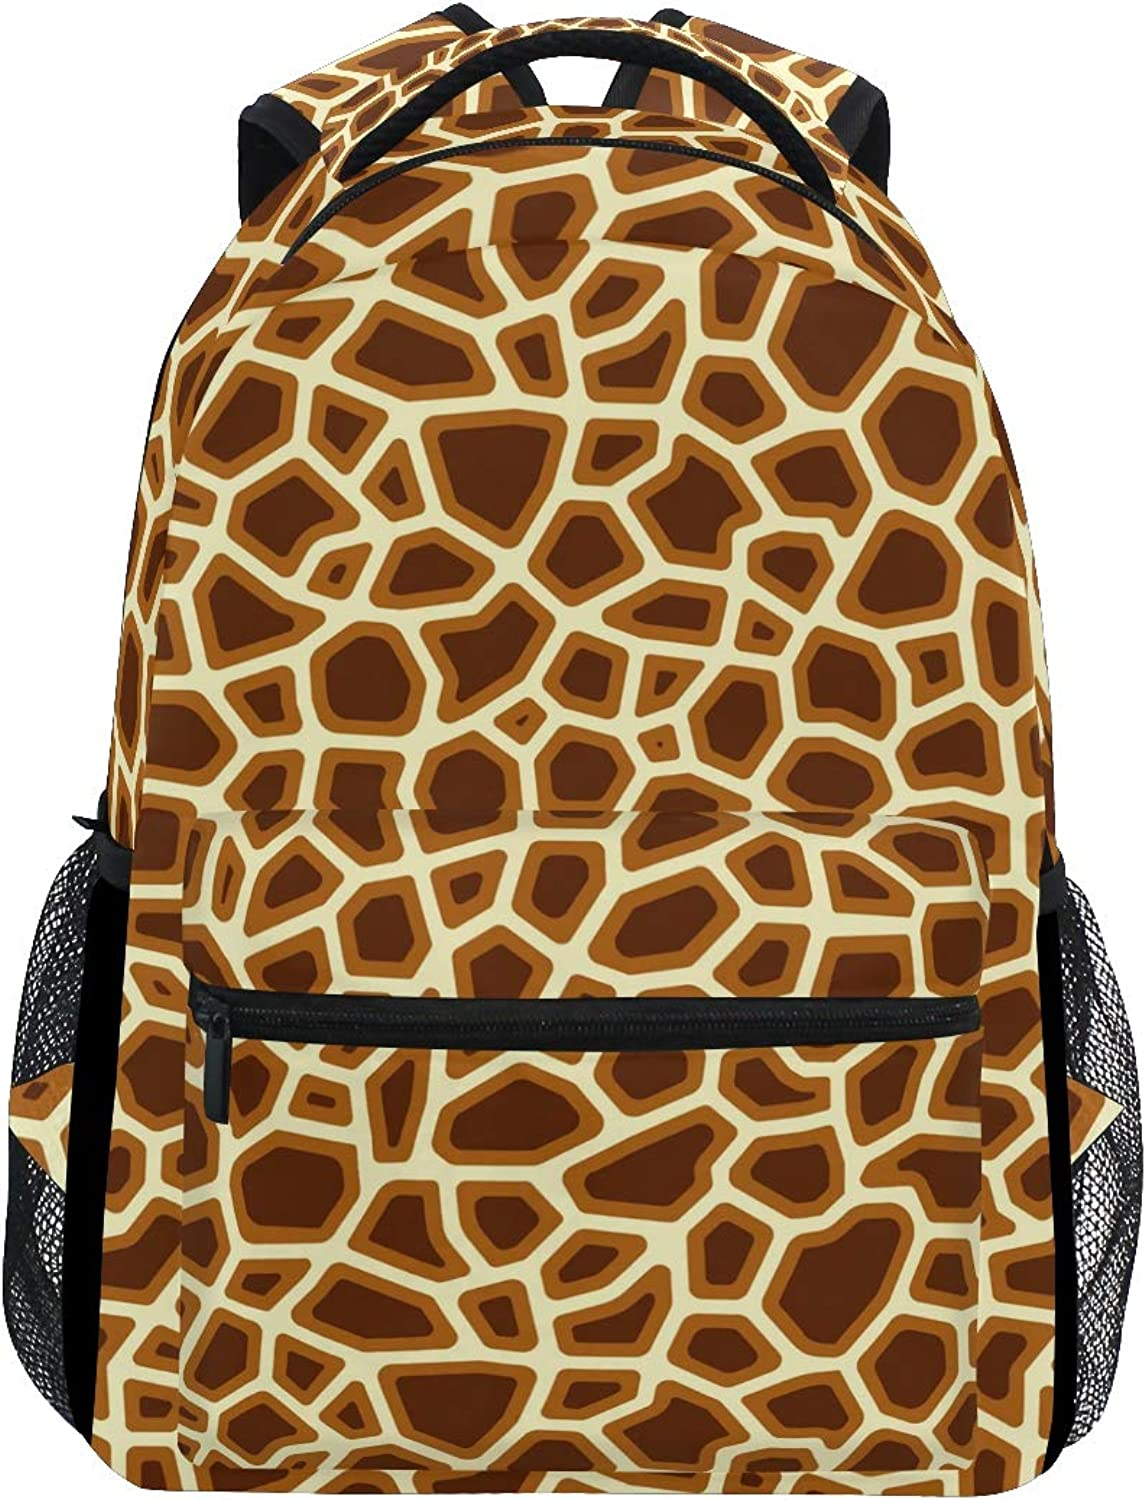 Tricolor Giraffe Decorations Large Backpack Travel Outdoor Sports Laptop Backpack for Women & Men College School Water Resistant